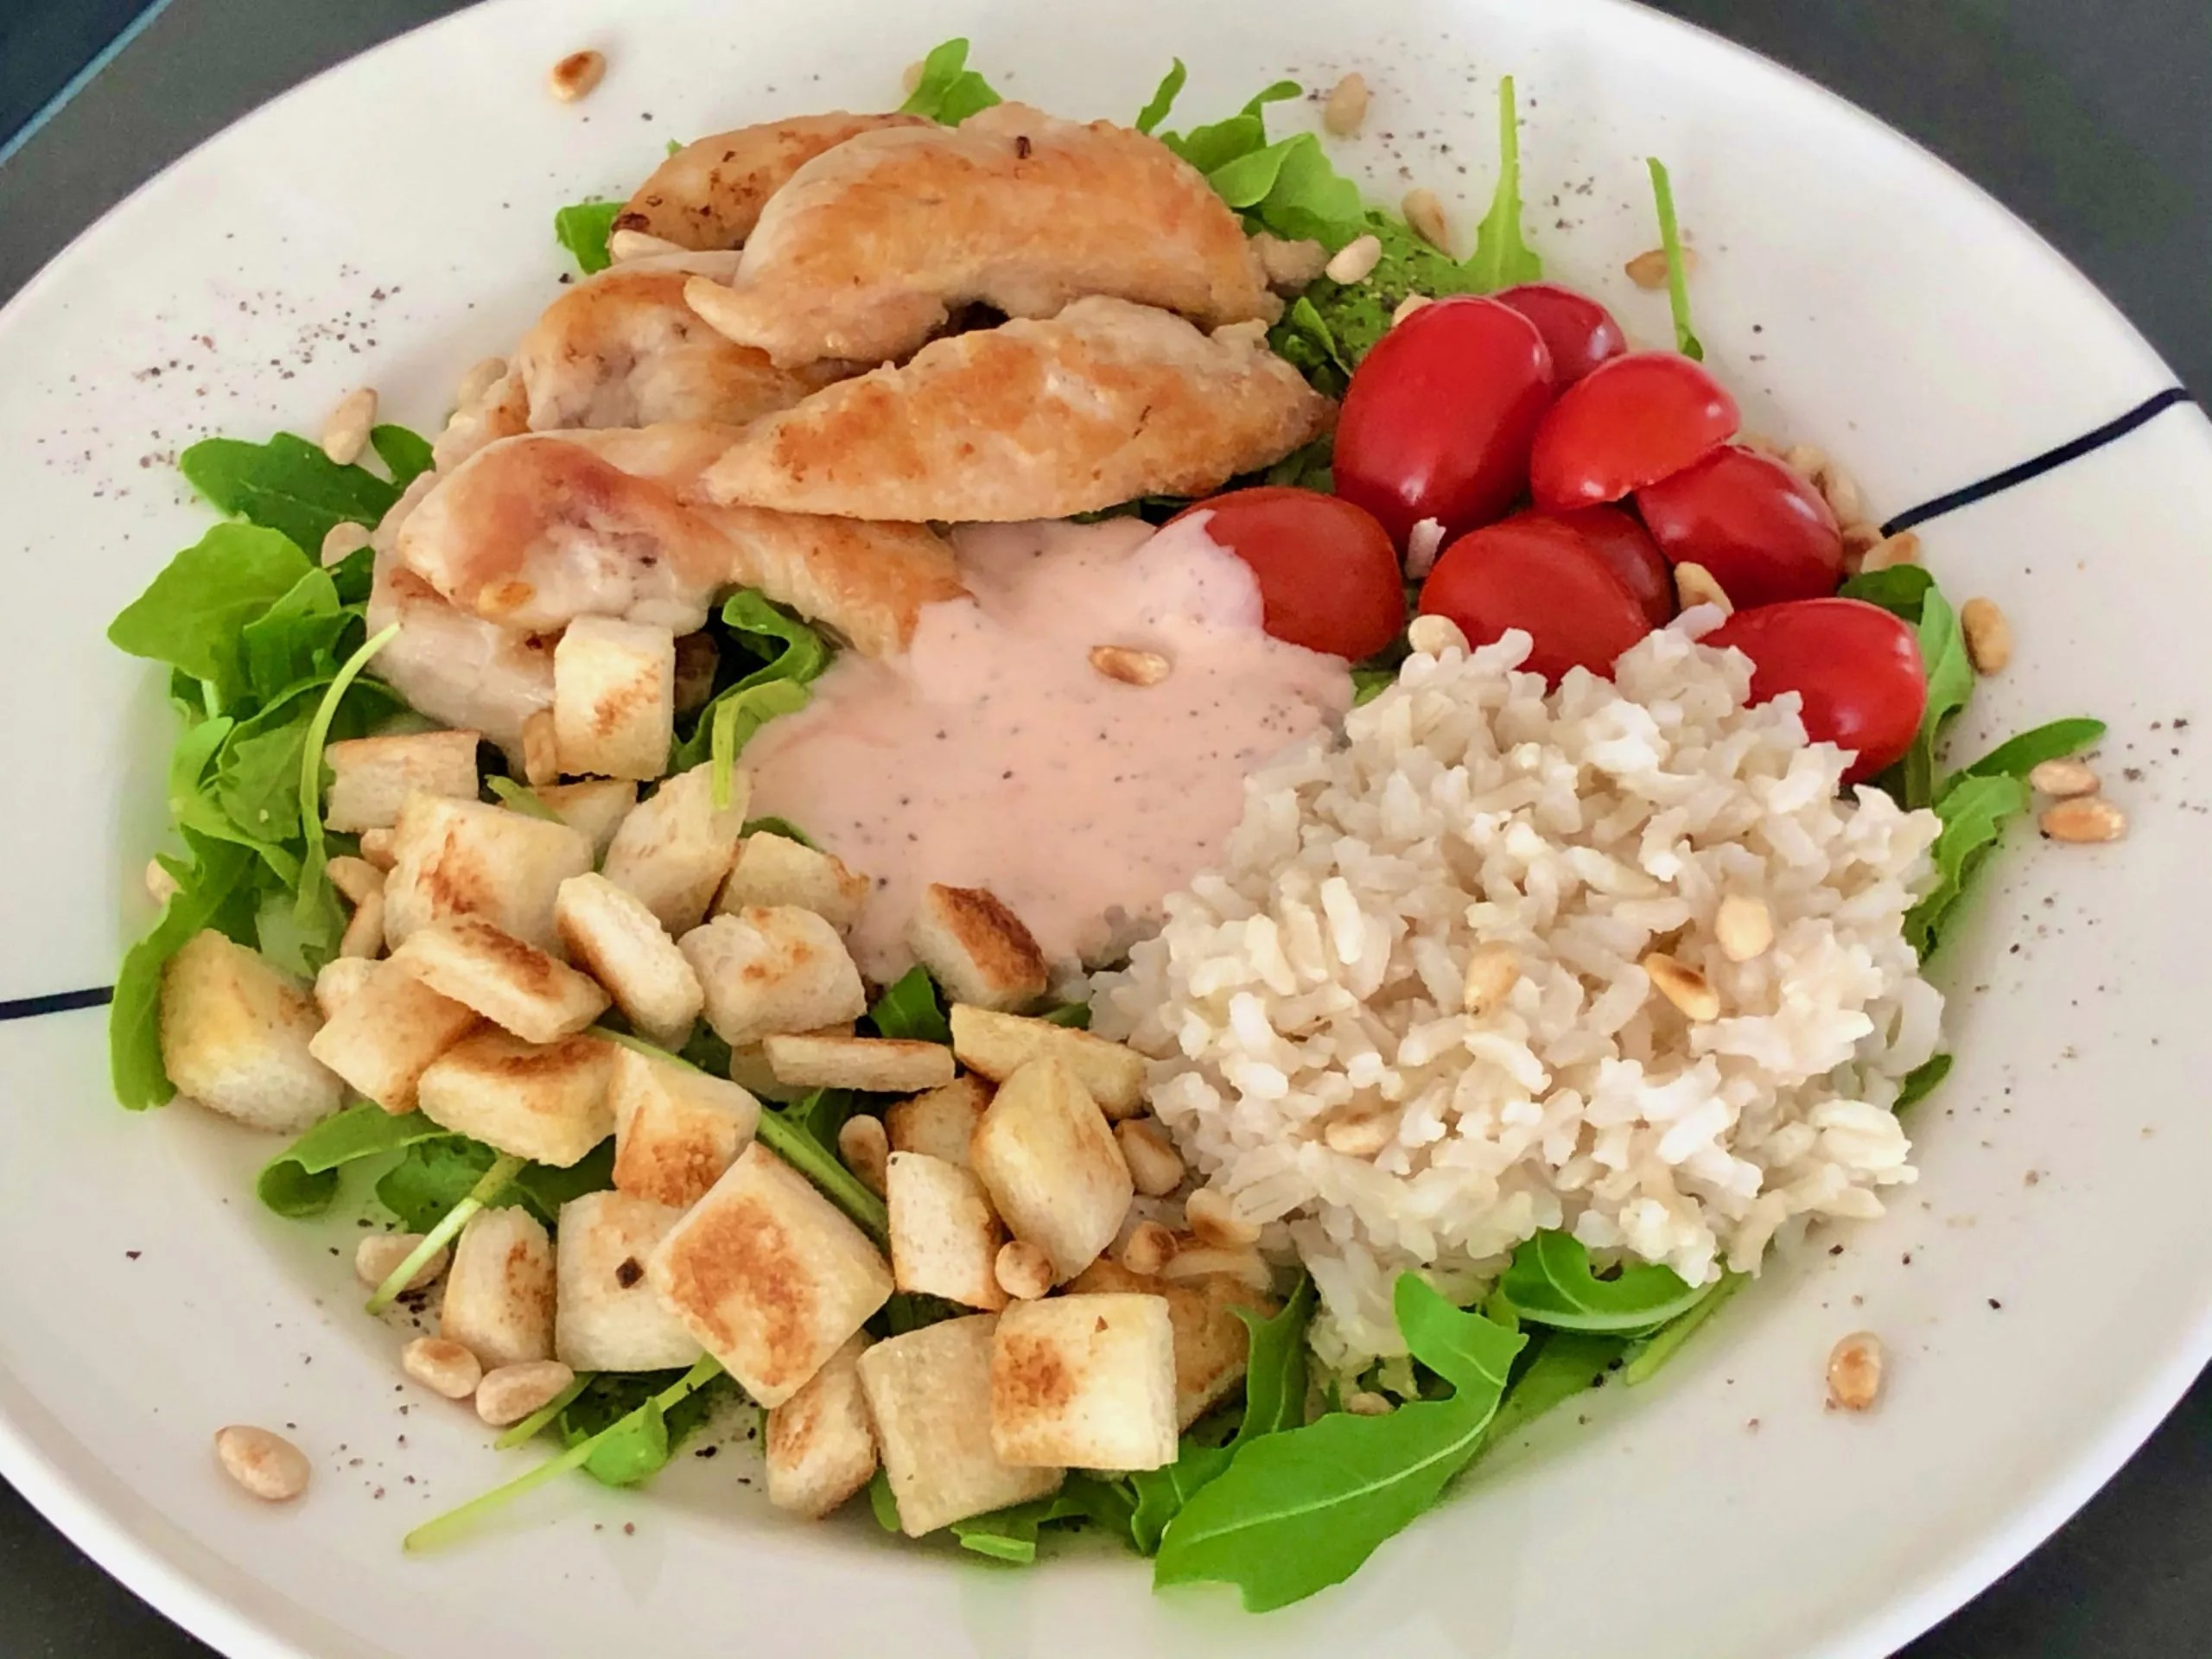 summer lunch with chicken and croutons